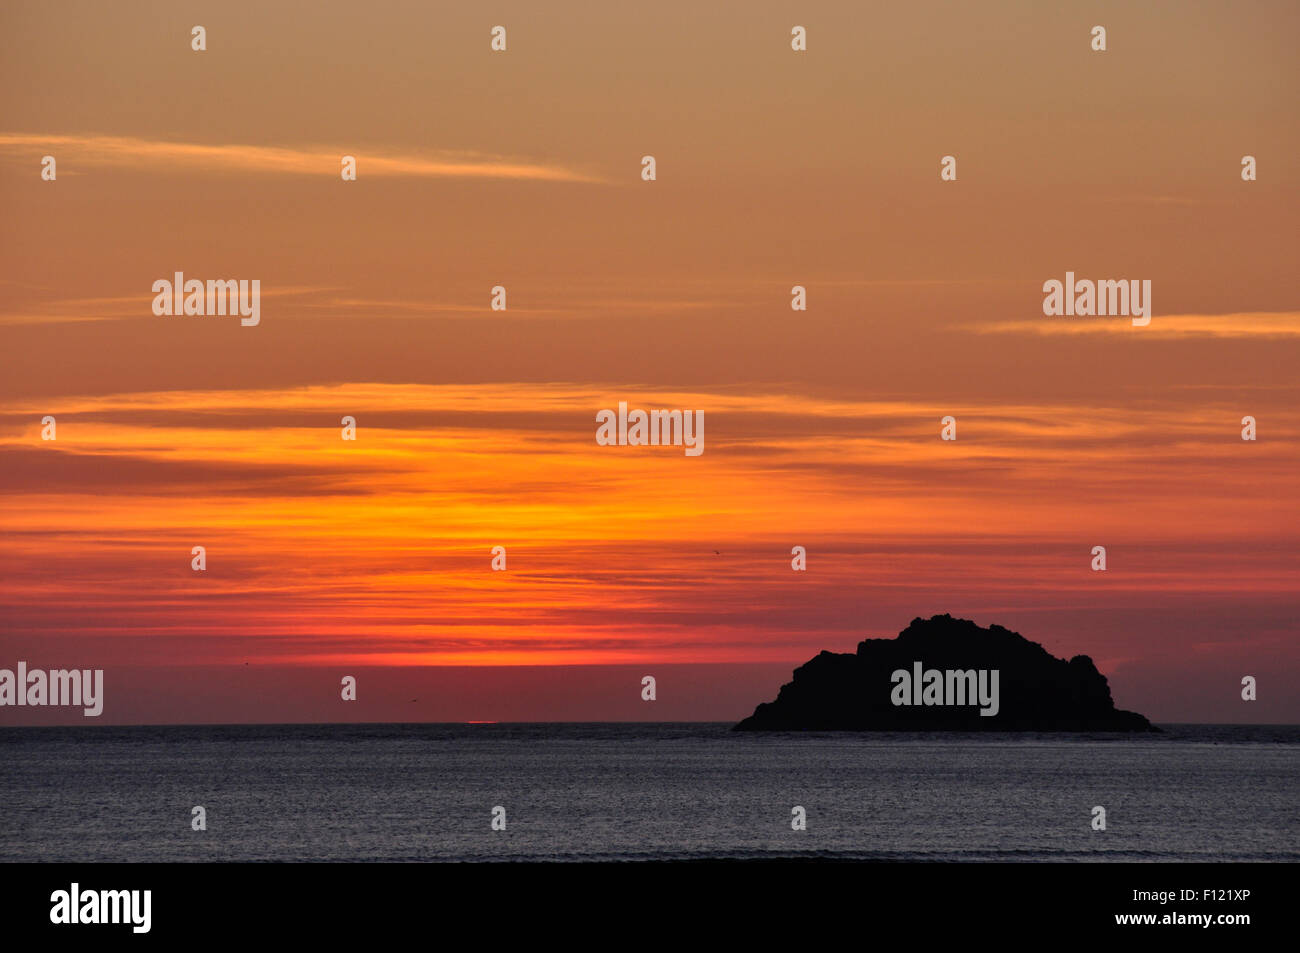 North Cornwall - orange red and gold skyscape - immediately after the sun has set over the sea - an island in black - Stock Image